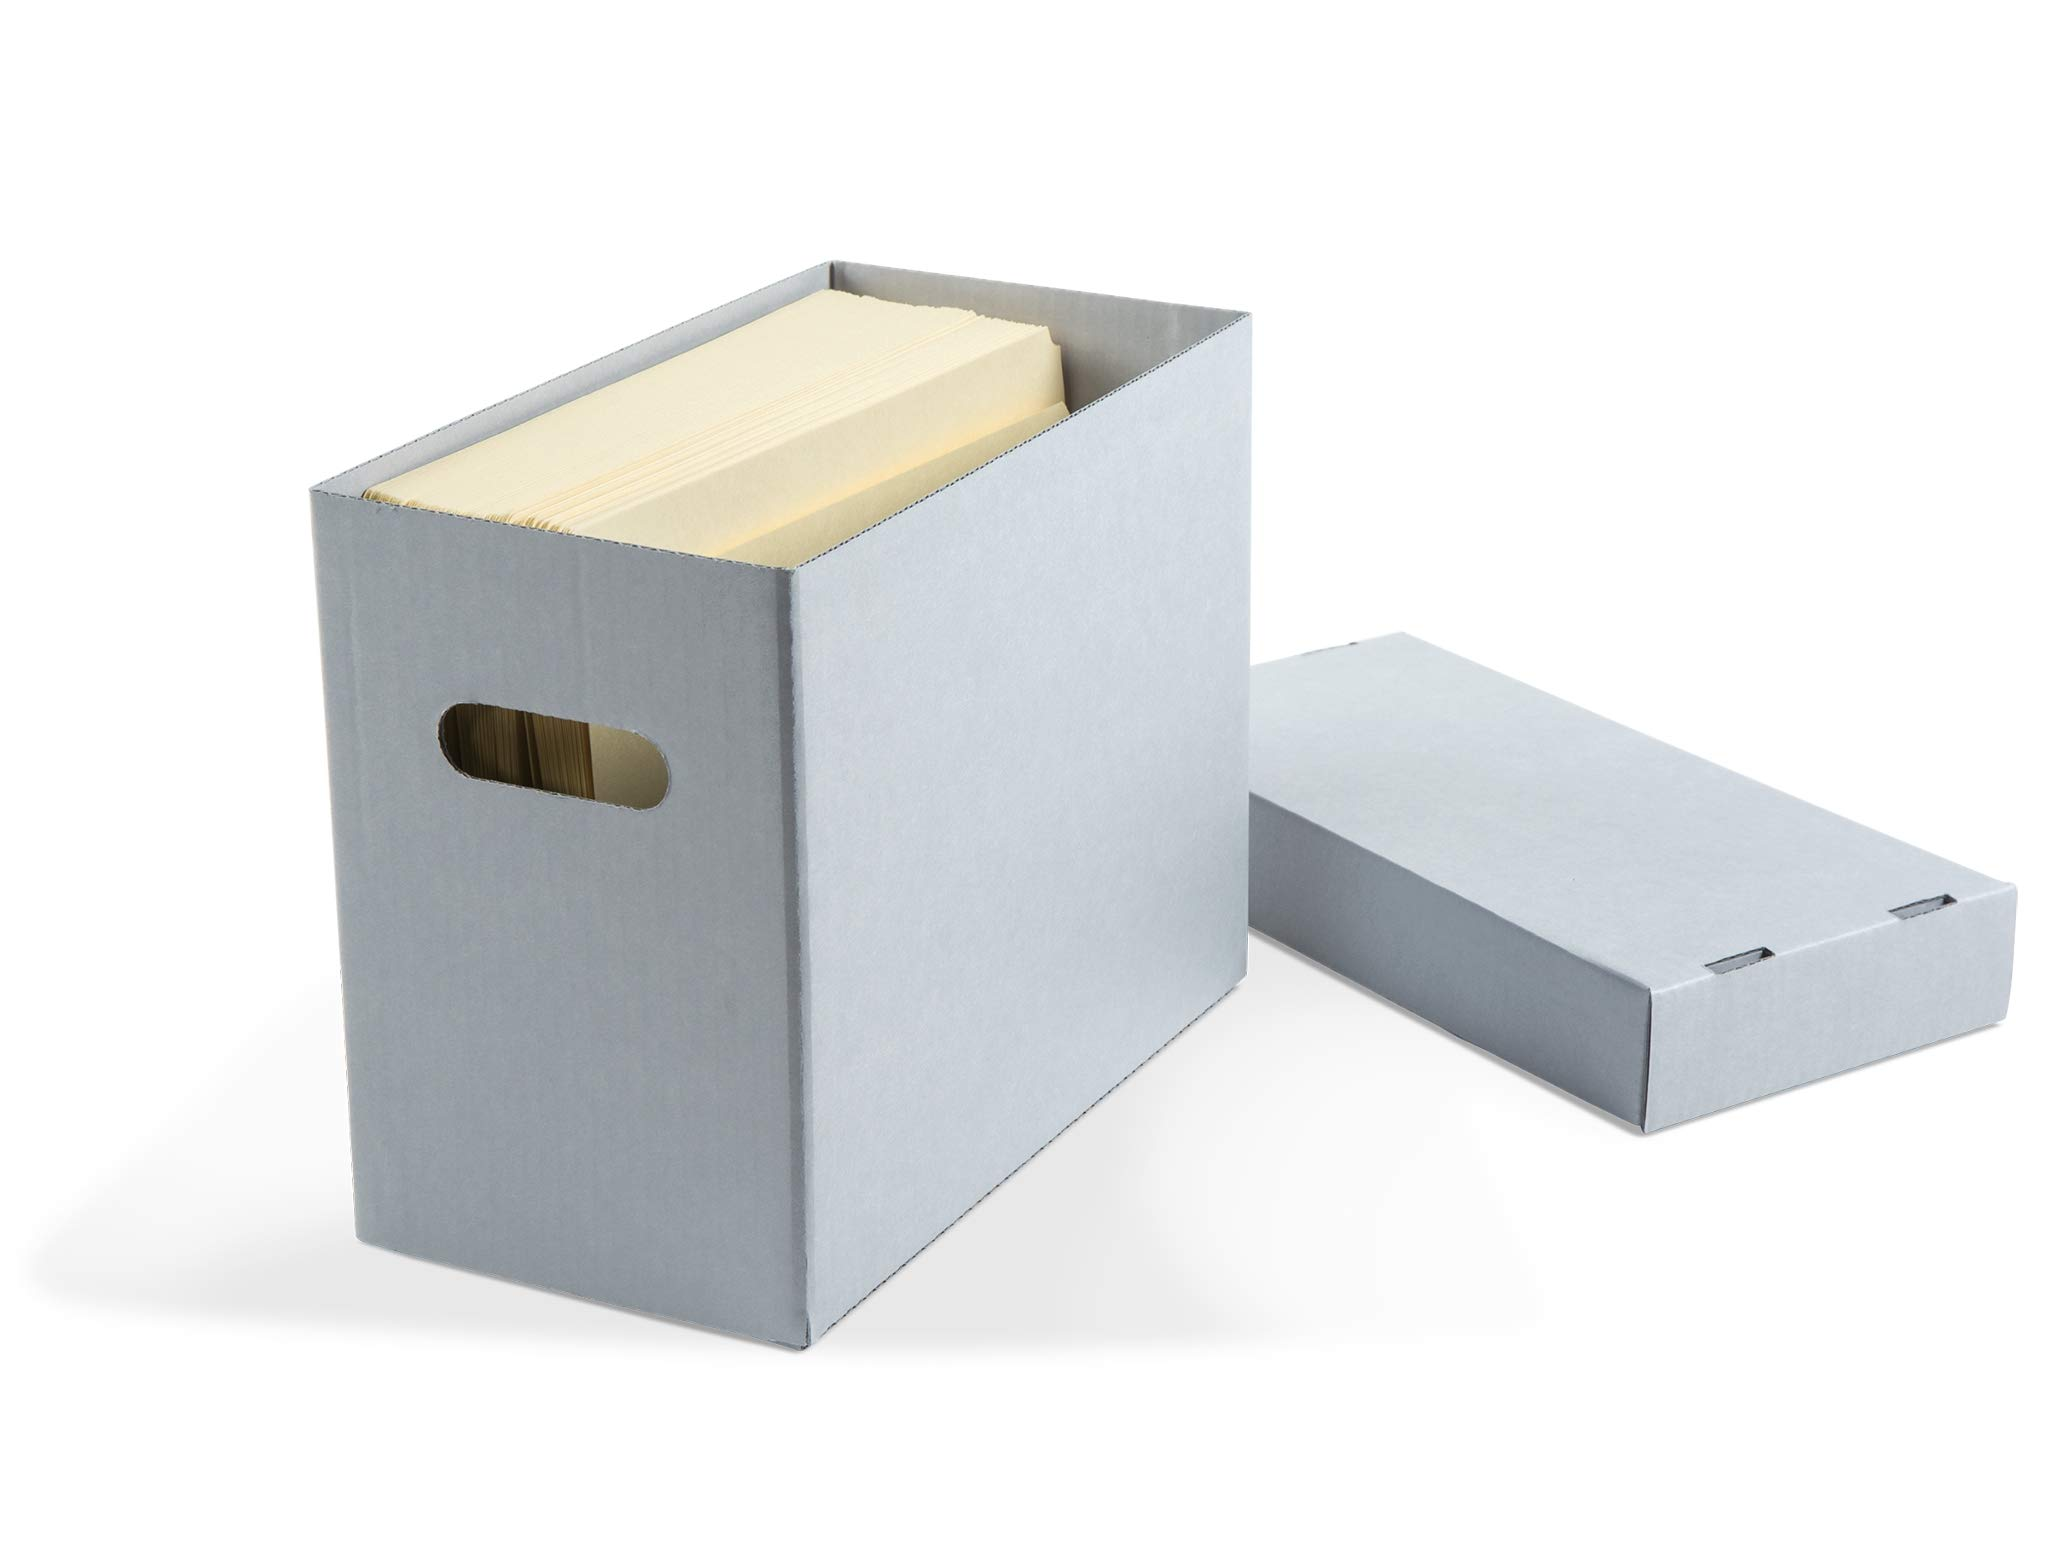 Gaylord Archival Record Storage Kit